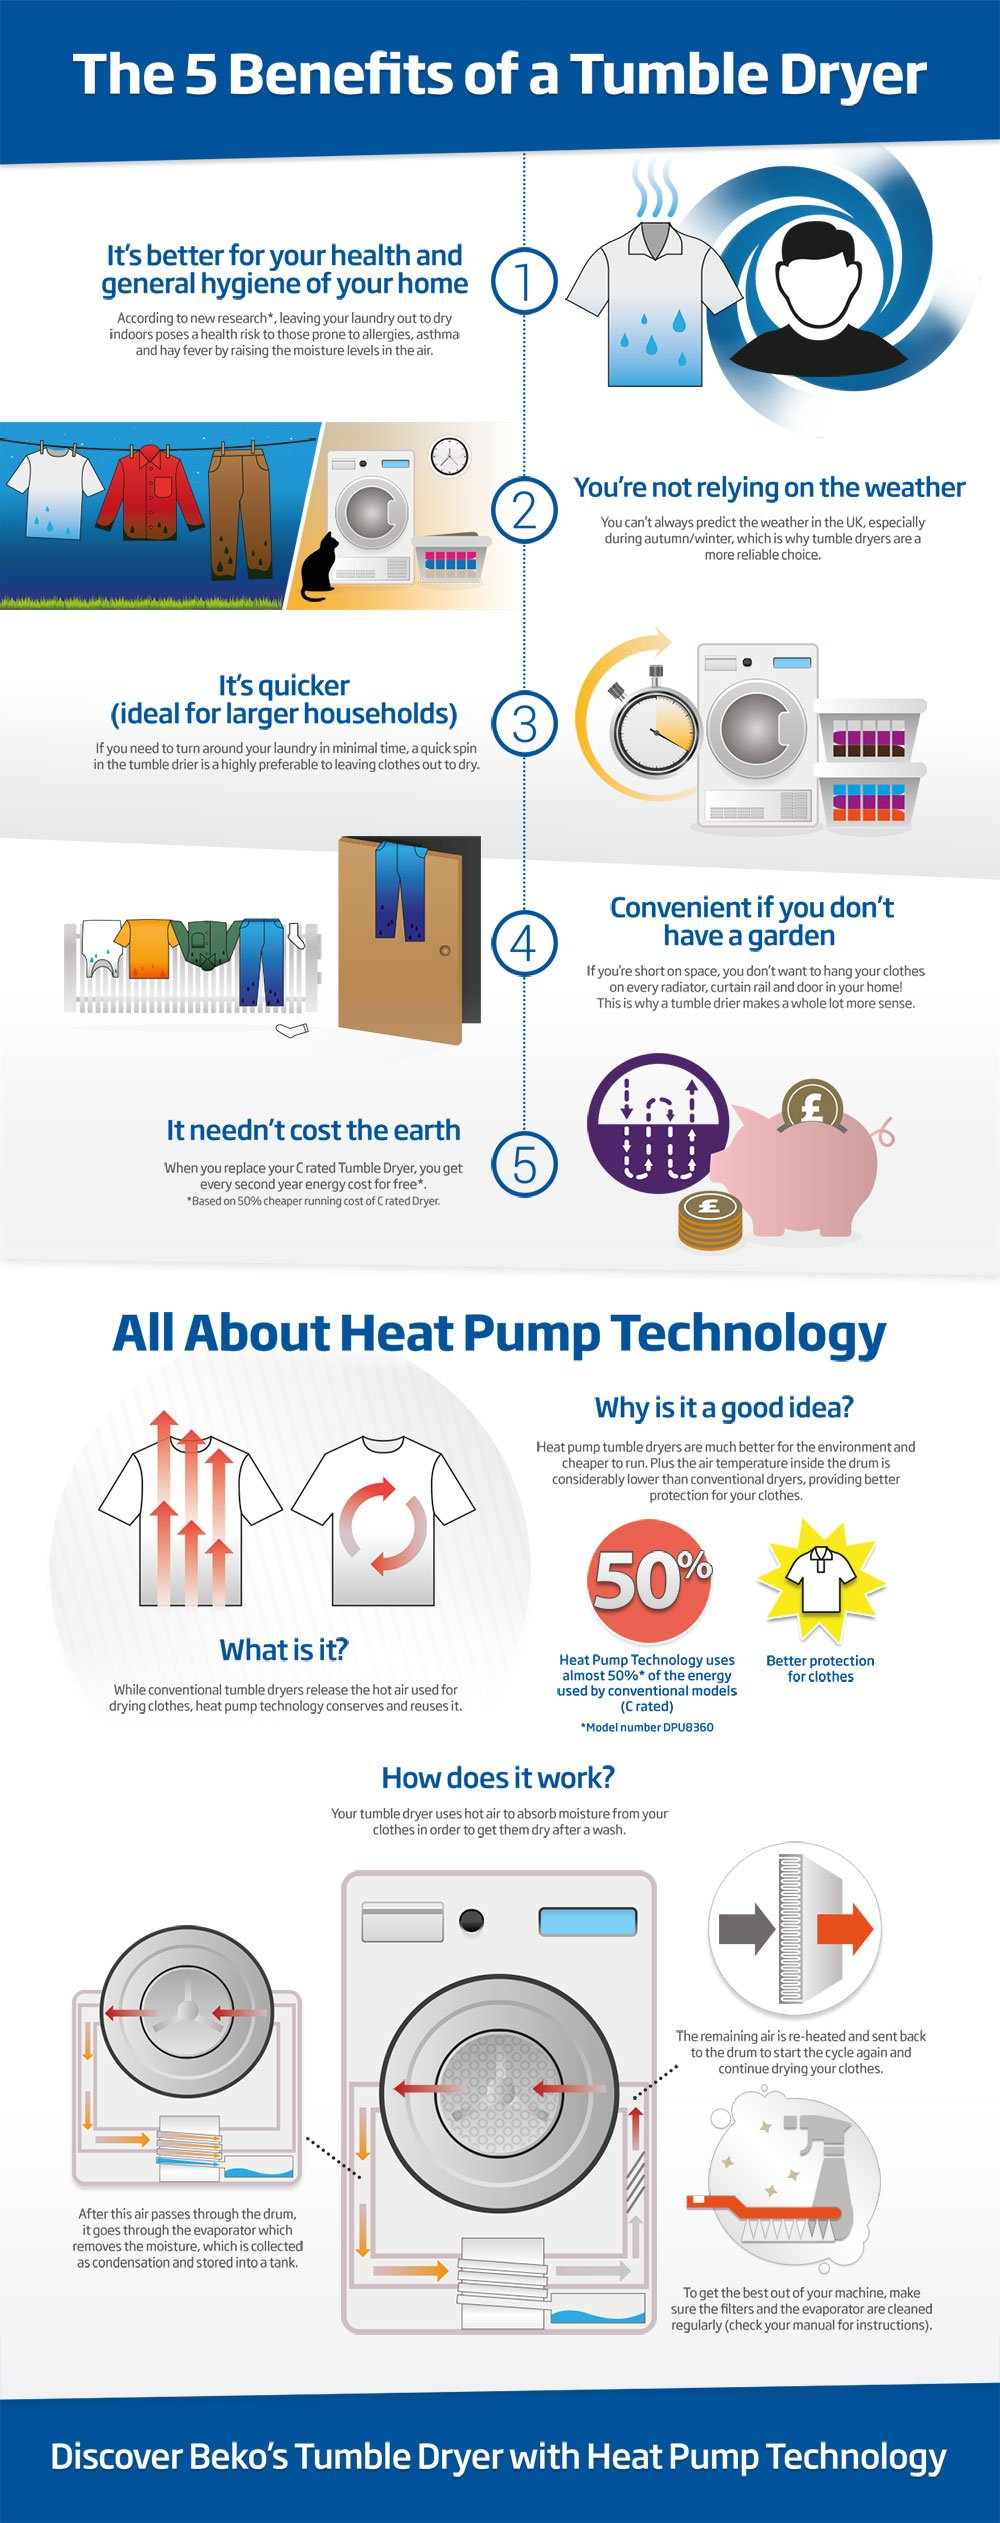 Benefits Of A Heat Pump Tumble Dryer Infographic Beko Uk Get Free Image About Wiring Diagram Moreover 3 Wire